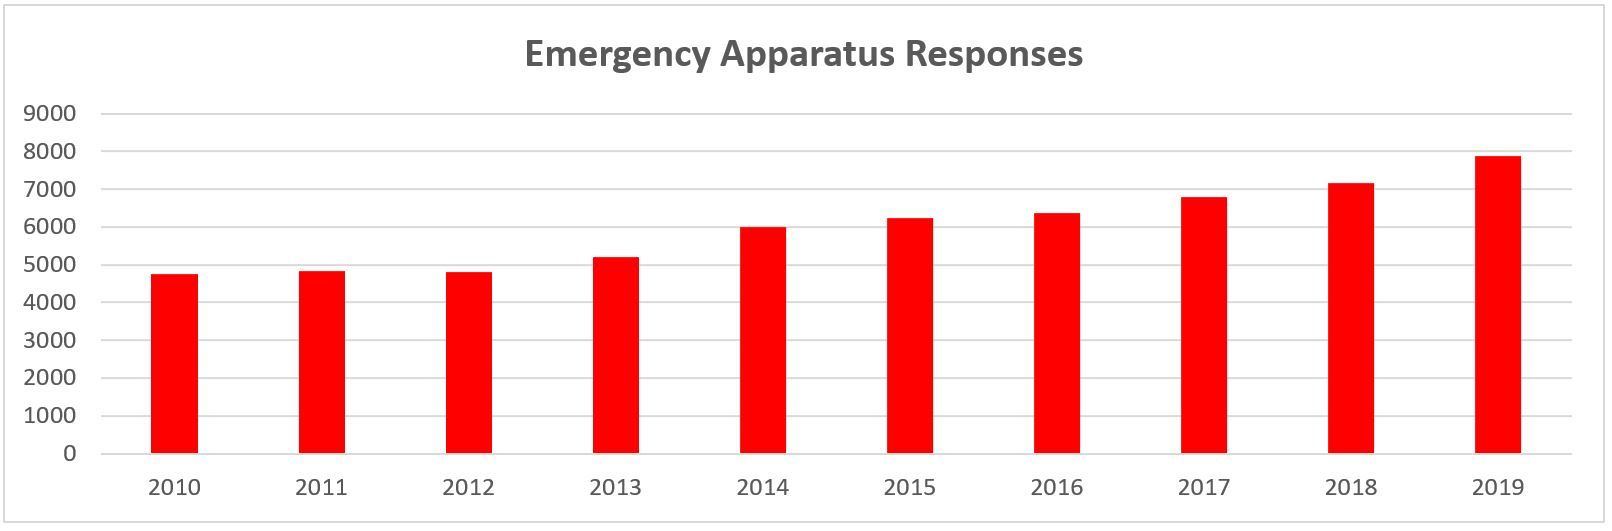 Emergency Apparatus Responses